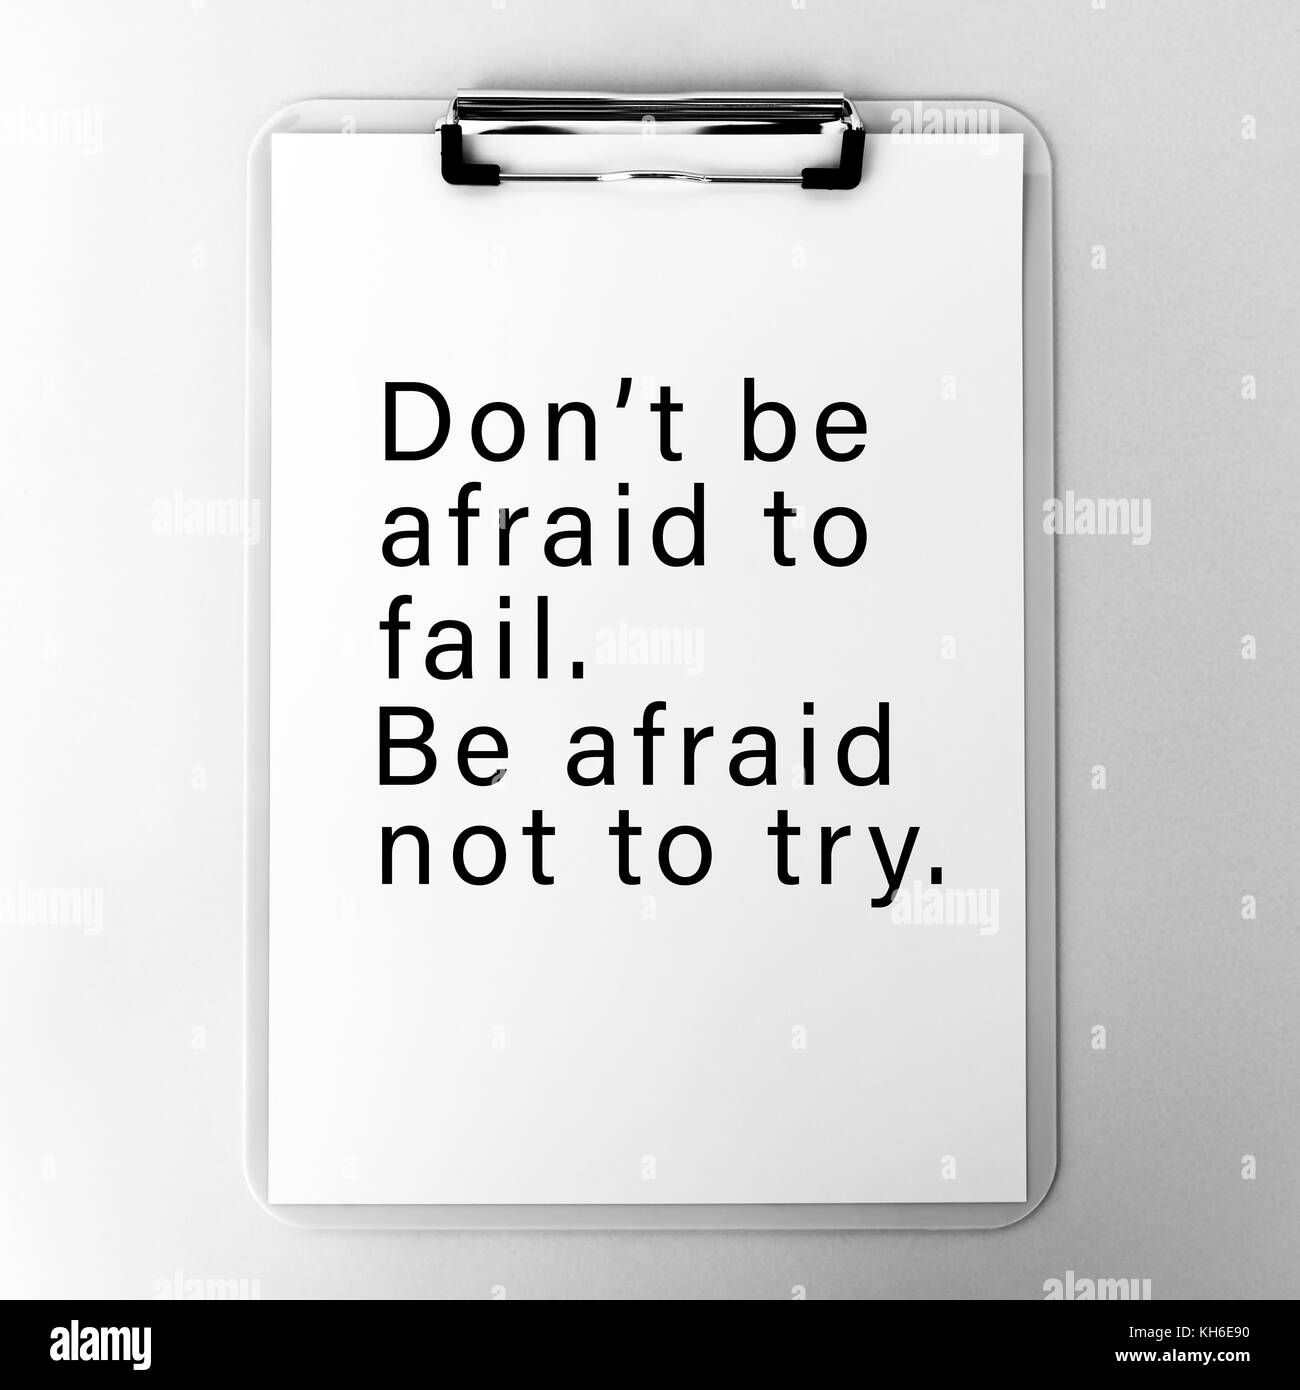 Inspirational Quotes Black And White Stock Photos Images Alamy